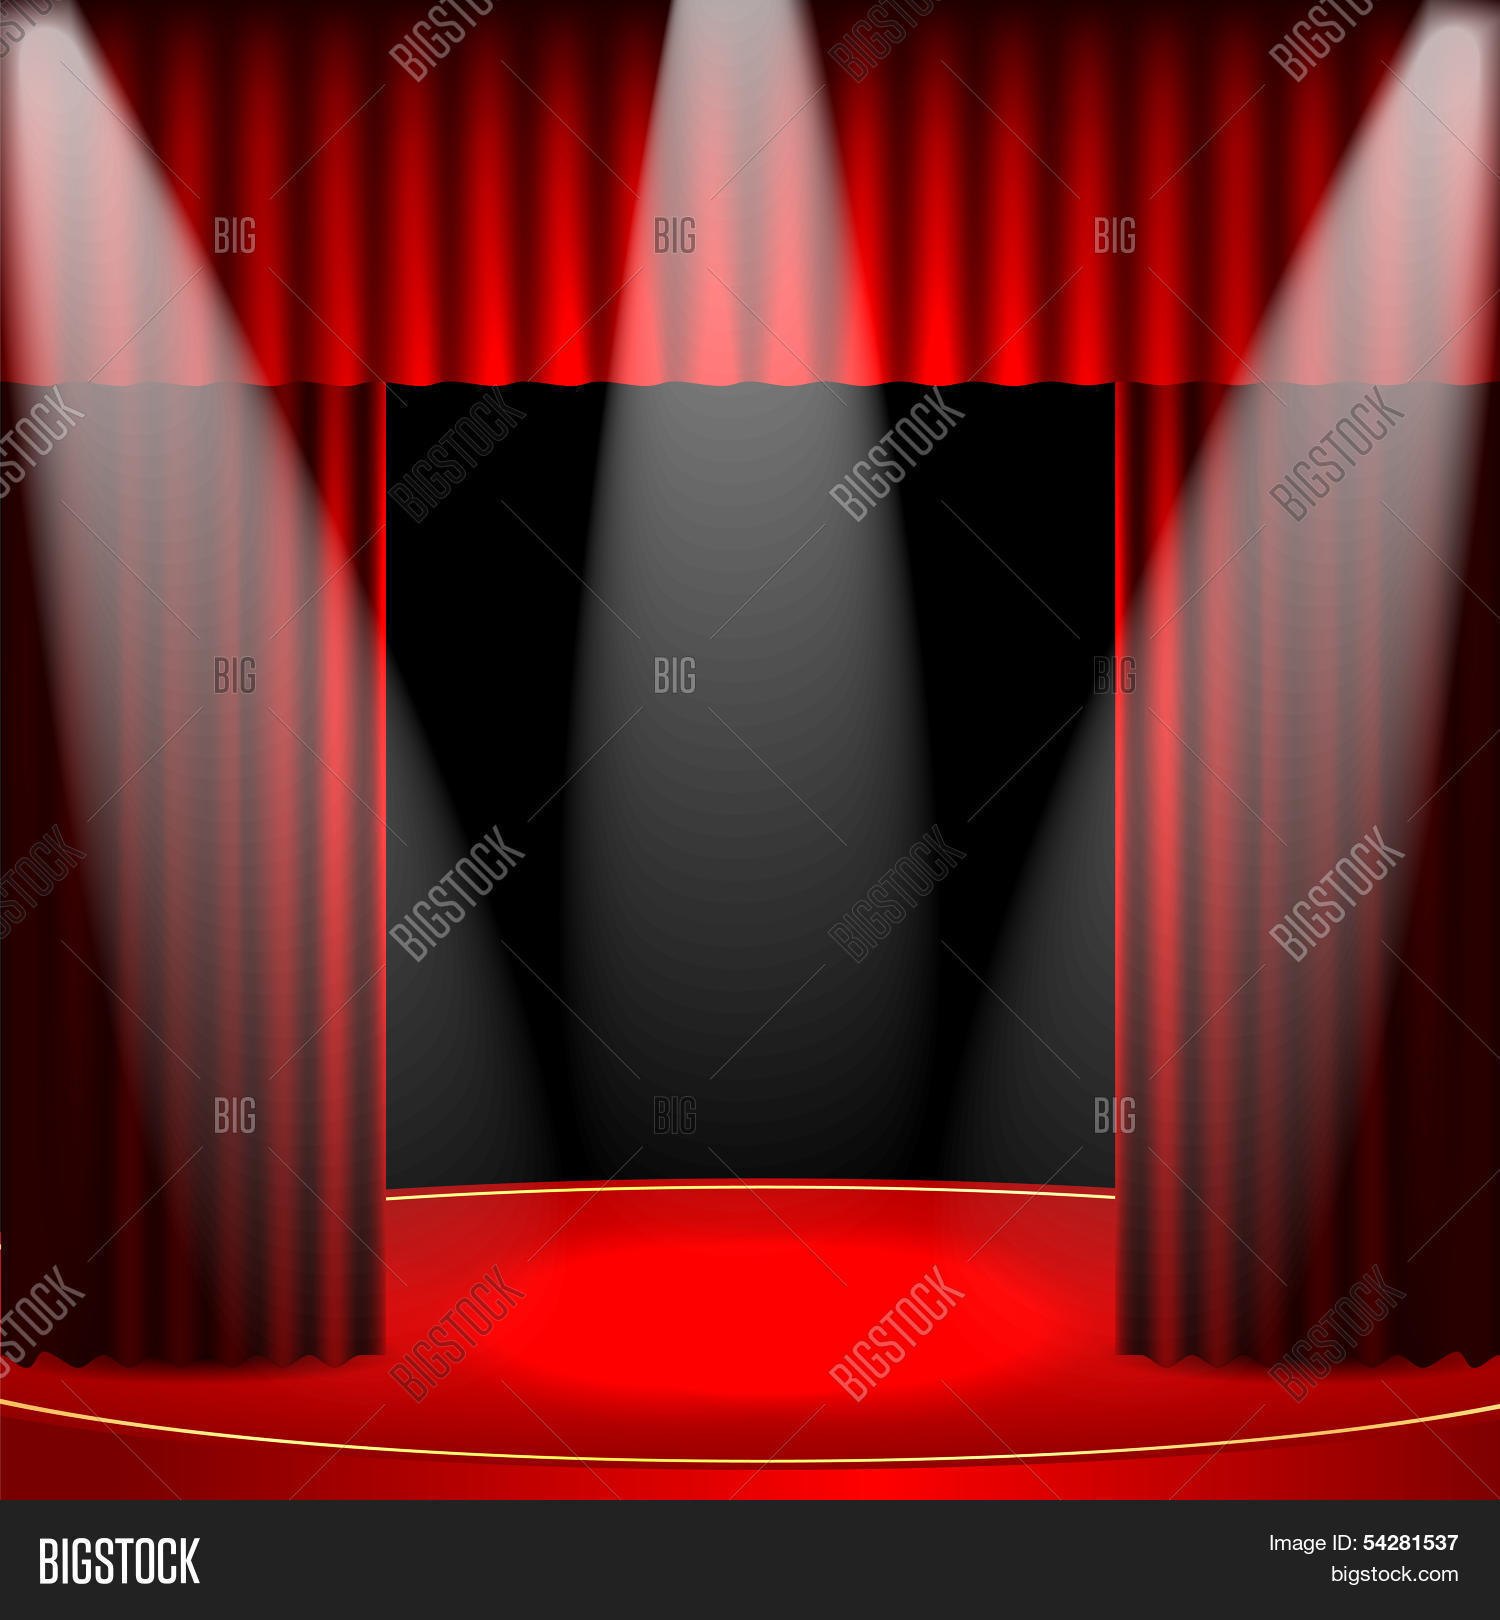 Theatrical Background Scene And Red Curtains Interior For The Theater Cinema Illuminated F Image Stock Photo 54281537